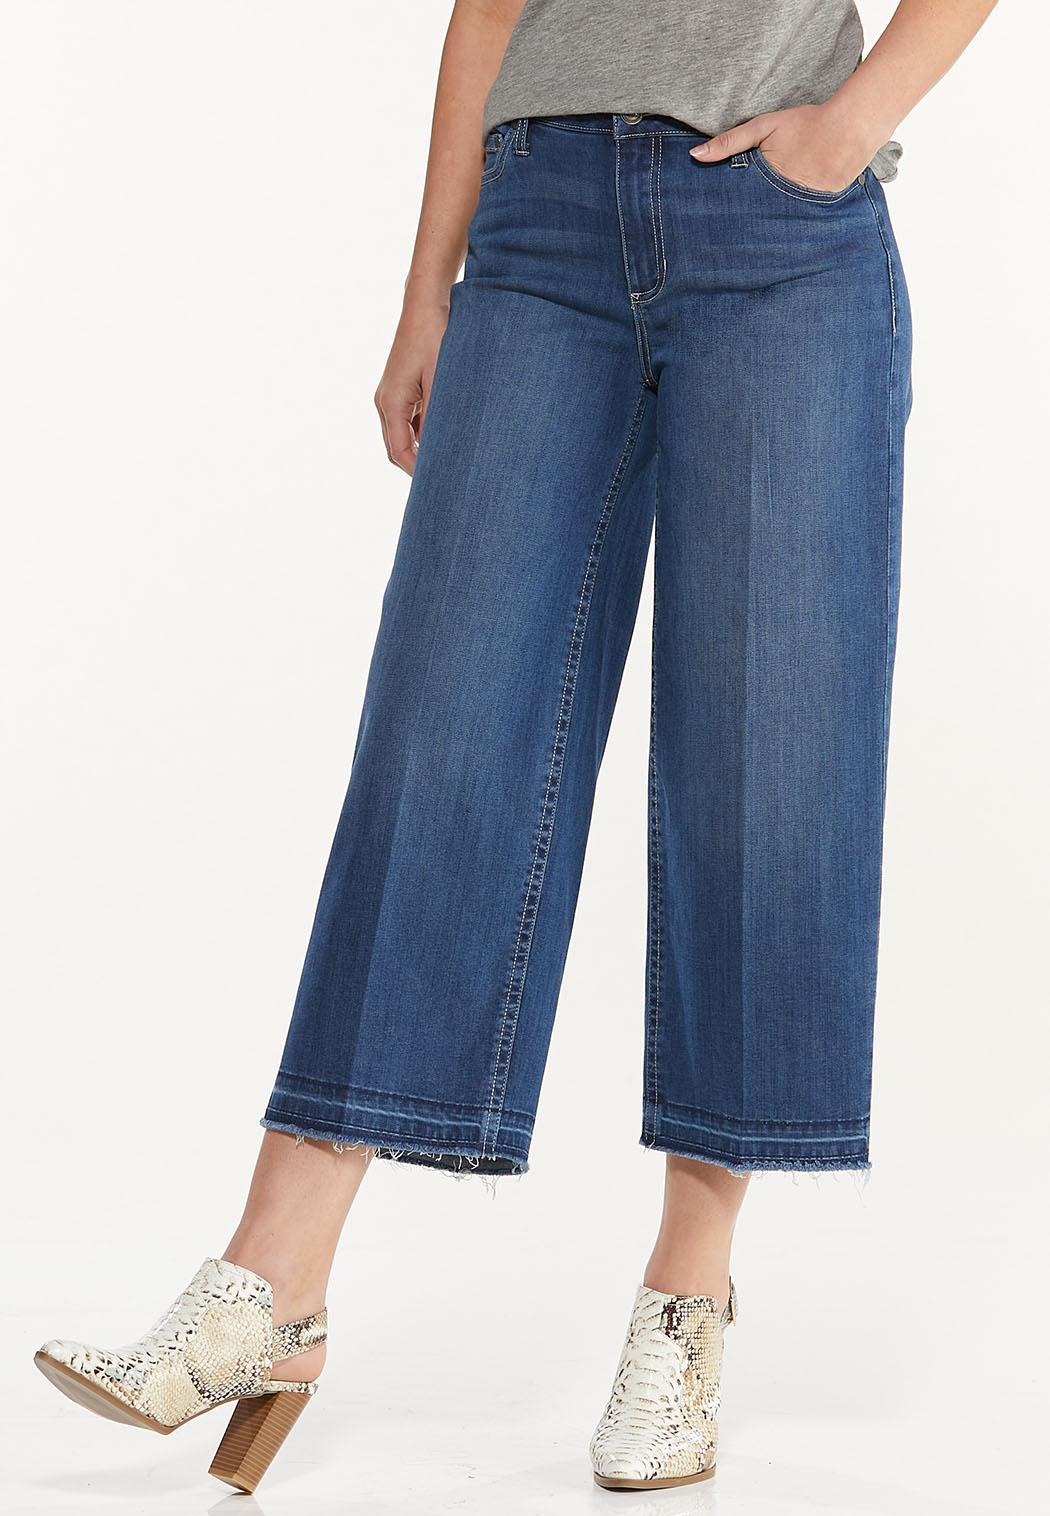 Cropped Released-Hem Jeans